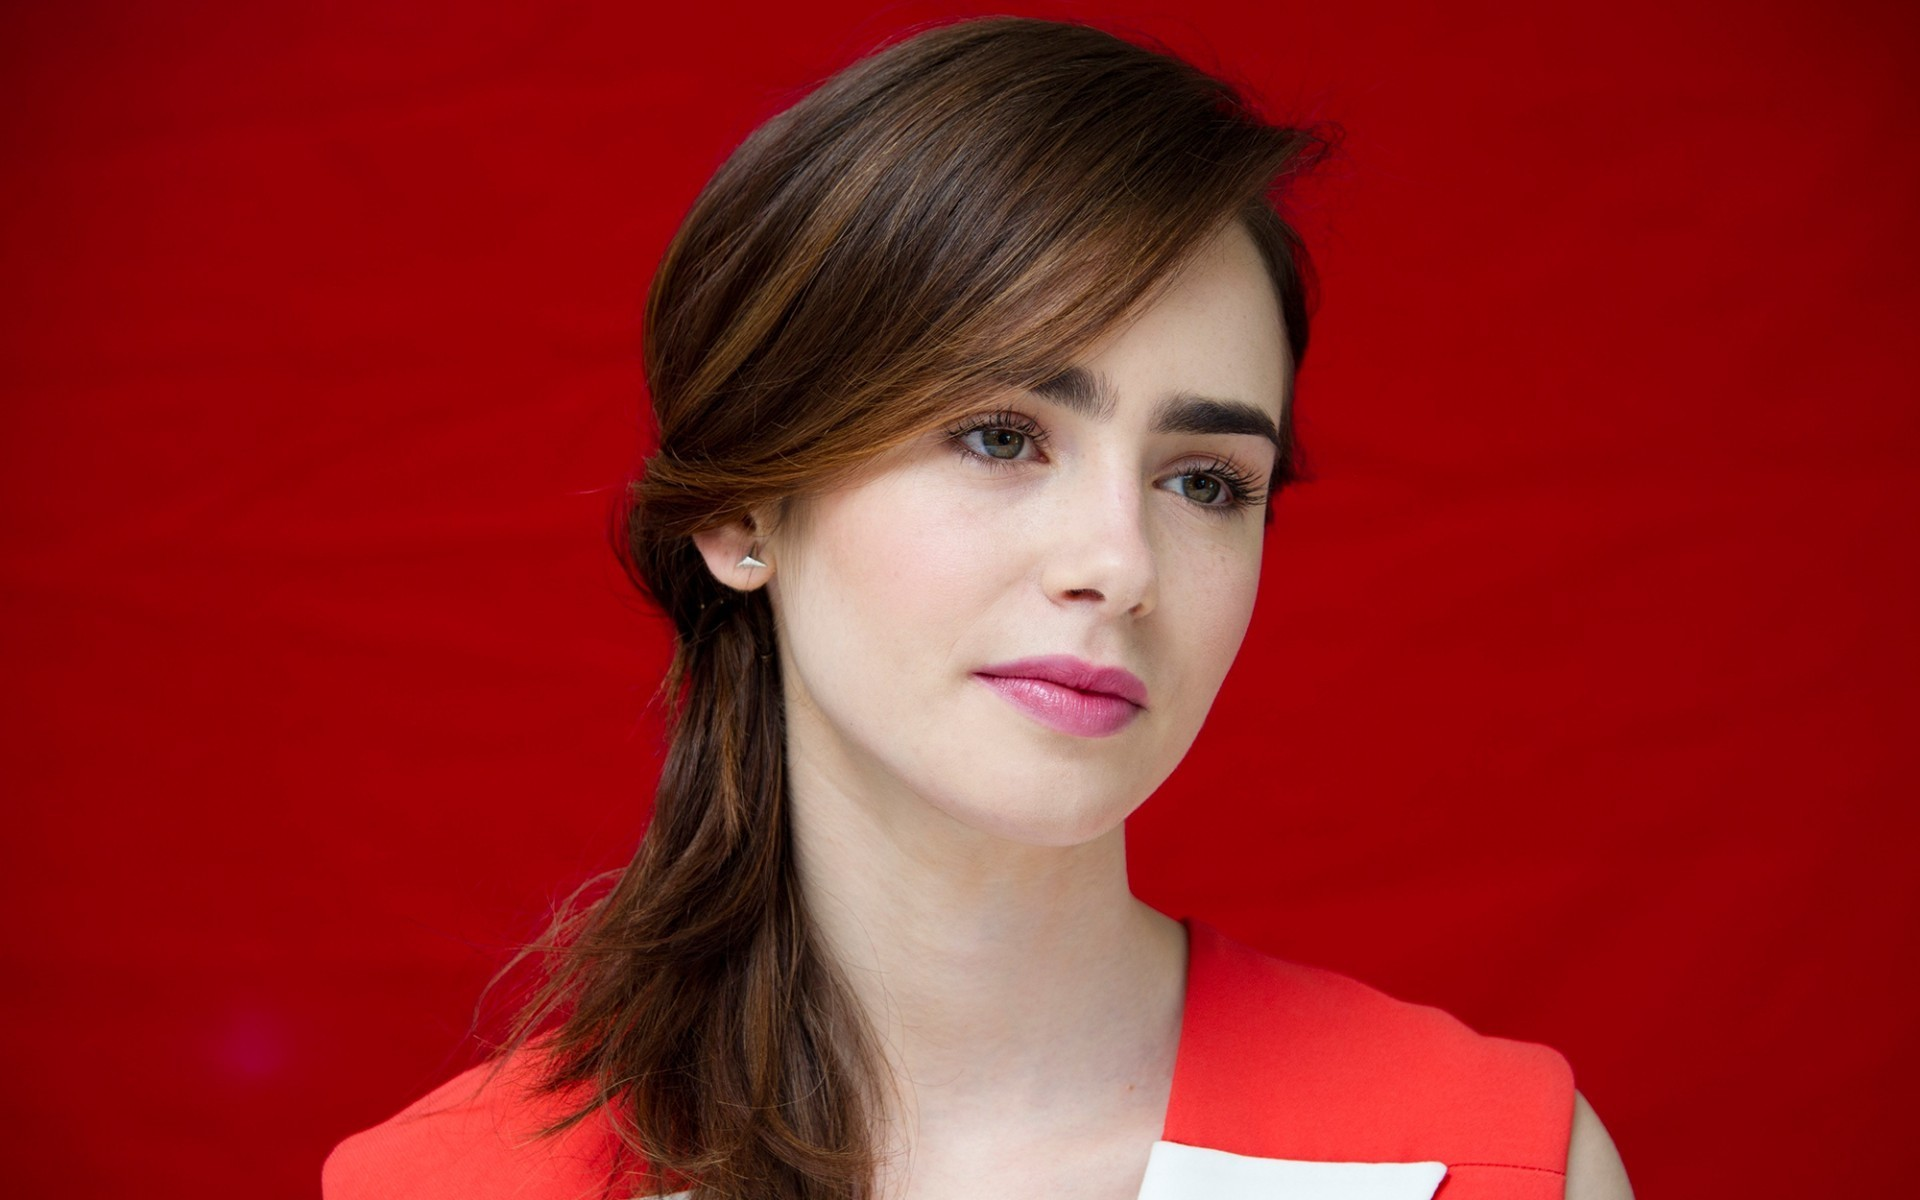 Lily Collins wallpaper 7789 1920x1200